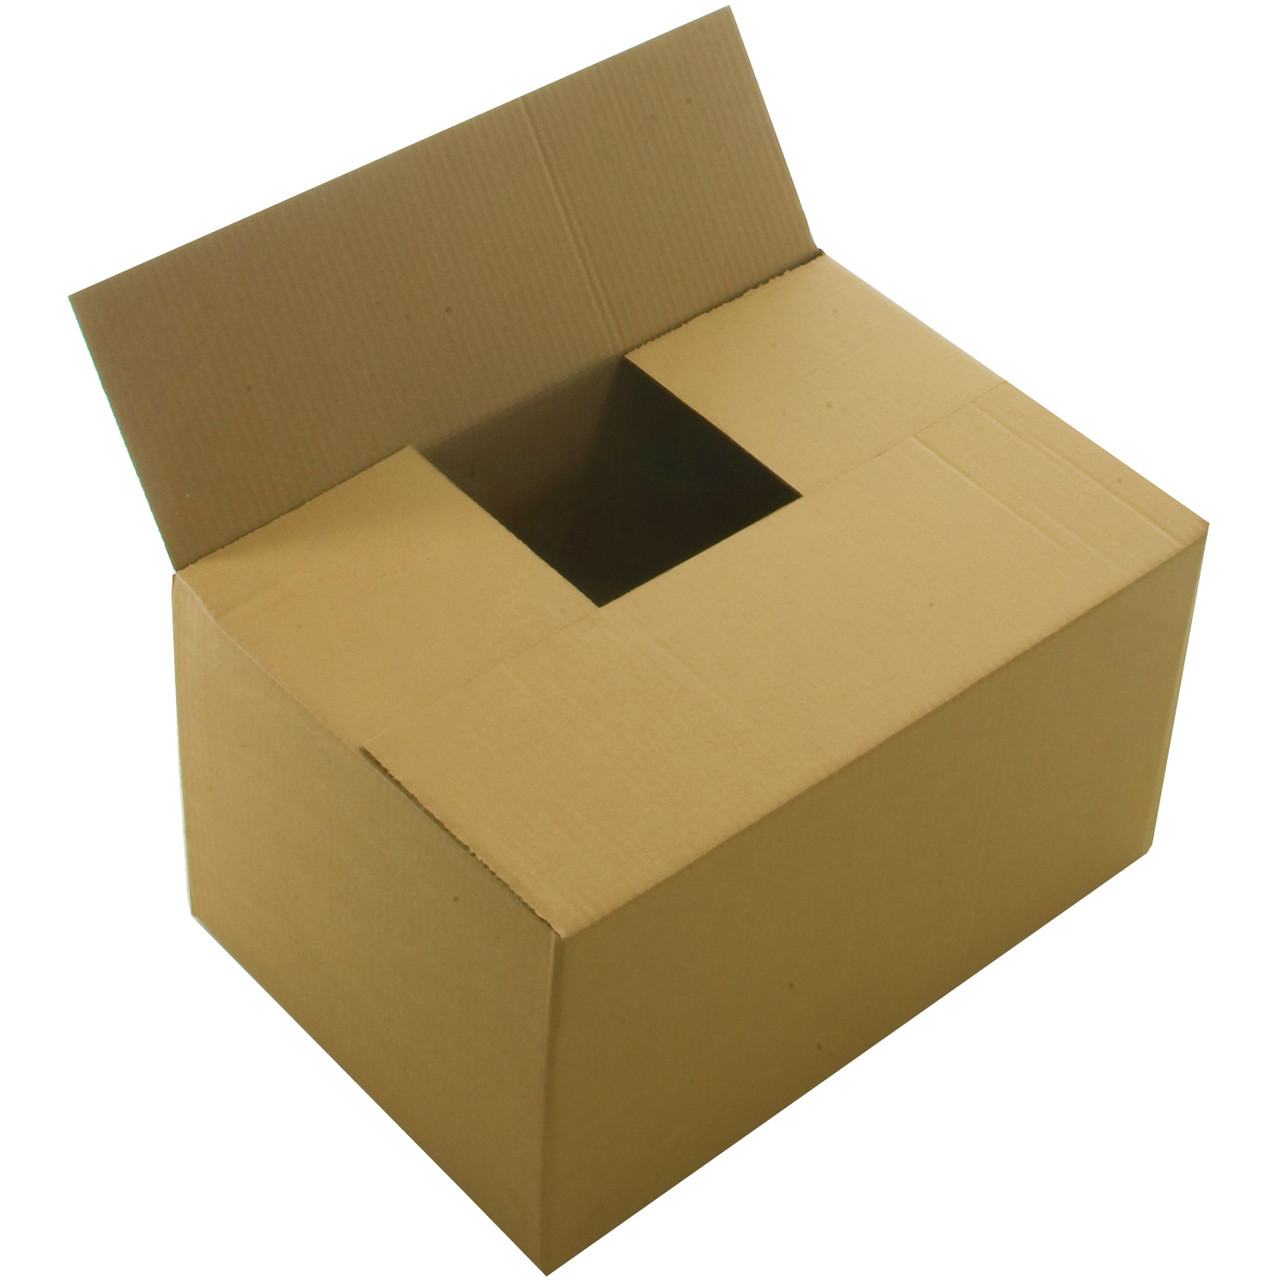 e957bb68a67 Double wall cardboard boxes 18 x 12 x 12